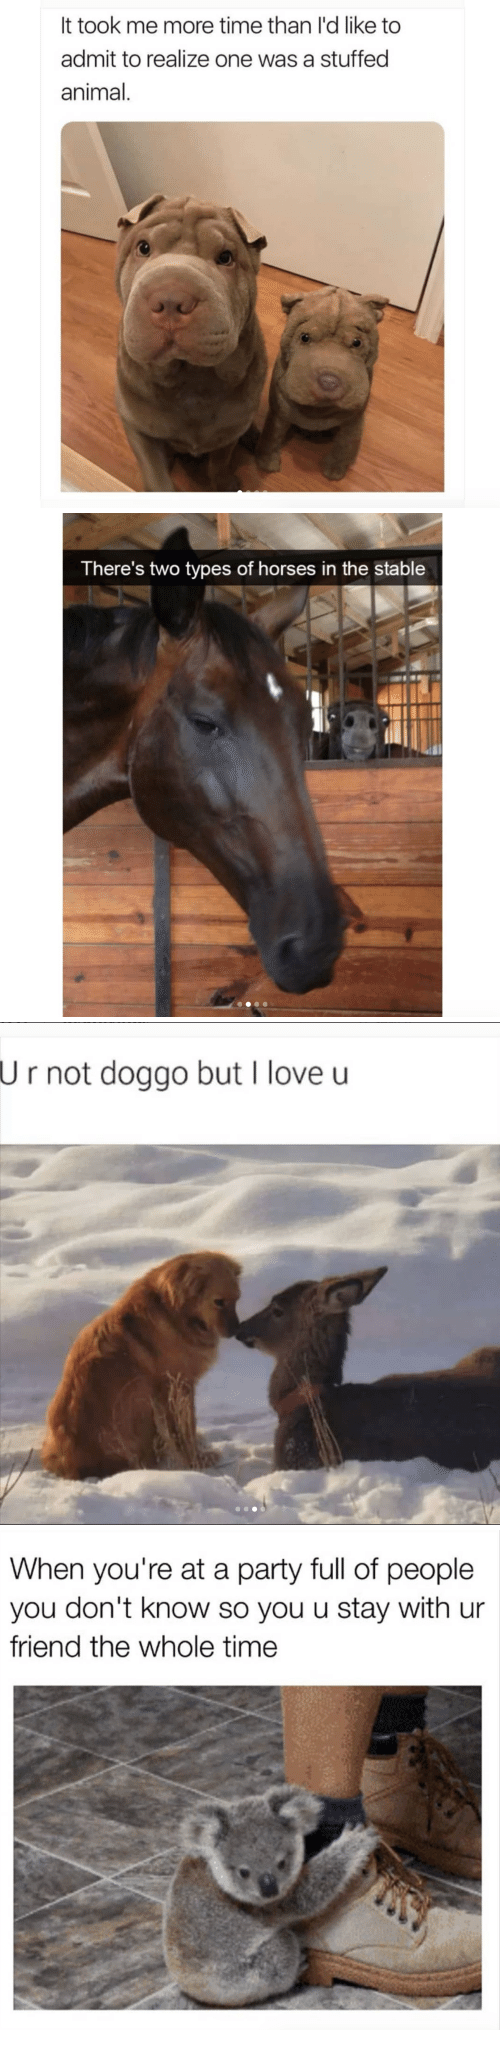 When Youre At A Party: It took me more time than l'd like to  admit to realize one was a stuffed  animal.   There's two types of horses in the stable   U  r not doggo but I love u   When you're at a party full of people  you don't know so you u stay with ur  friend the whole time